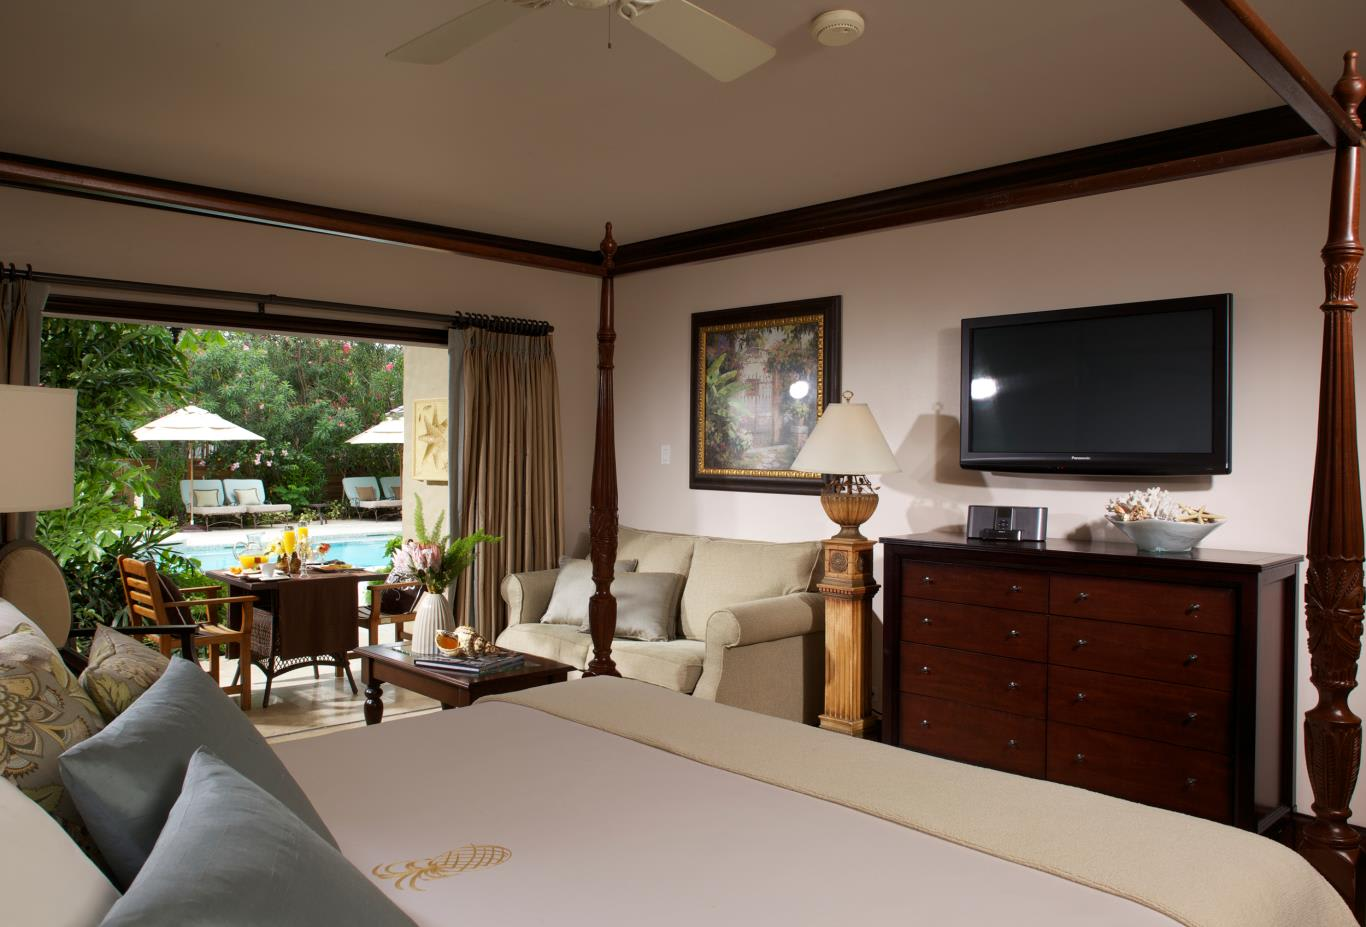 Honeymoon Grande Luxe Beachfront Sunset Concierge Room